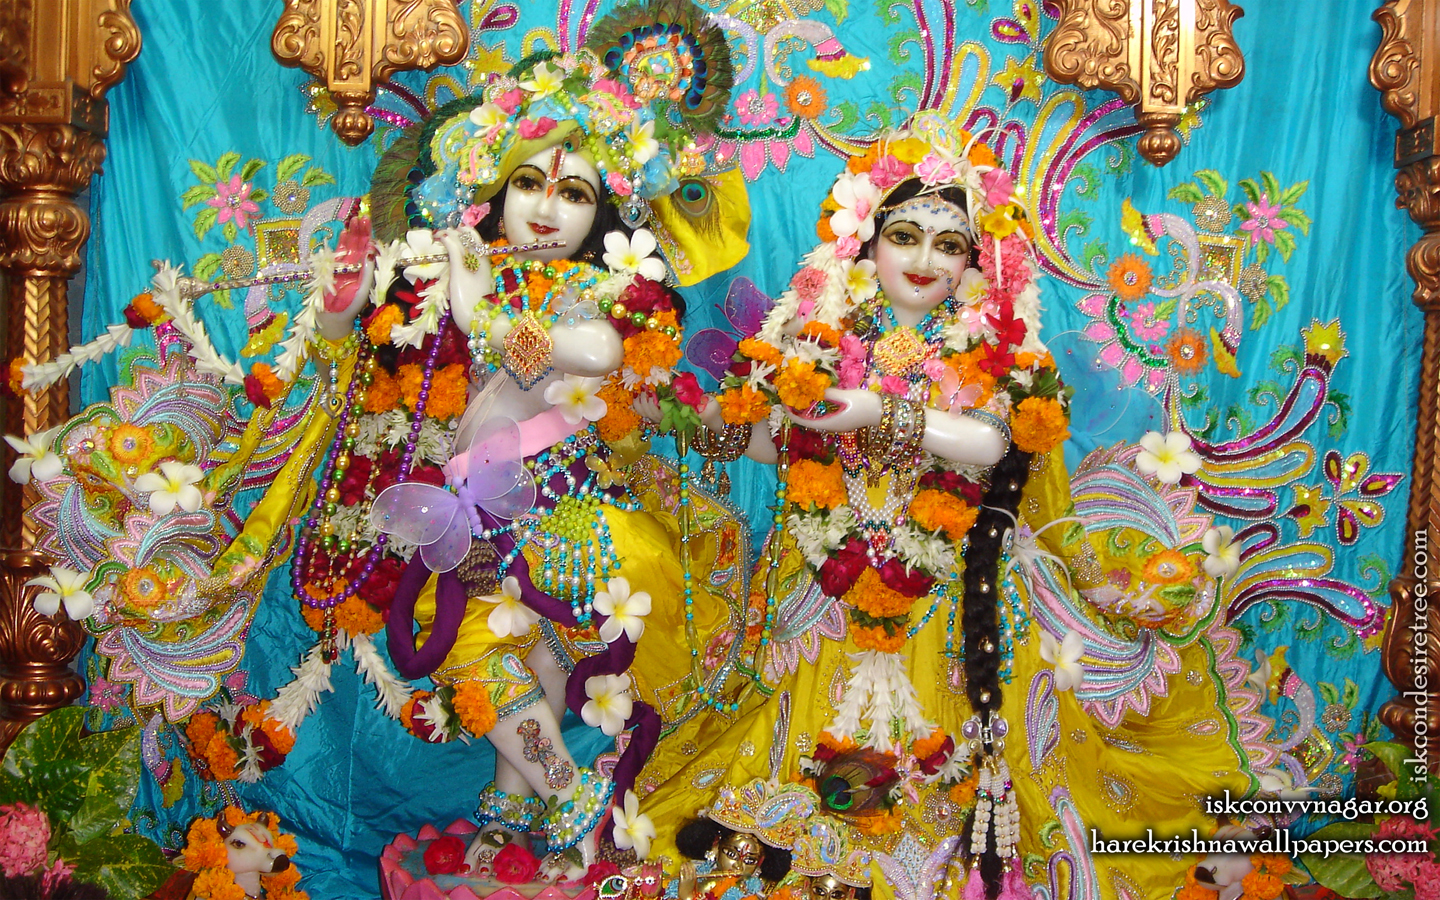 Sri Sri Radha Giridhari Wallpaper (008) Size 1440x900 Download